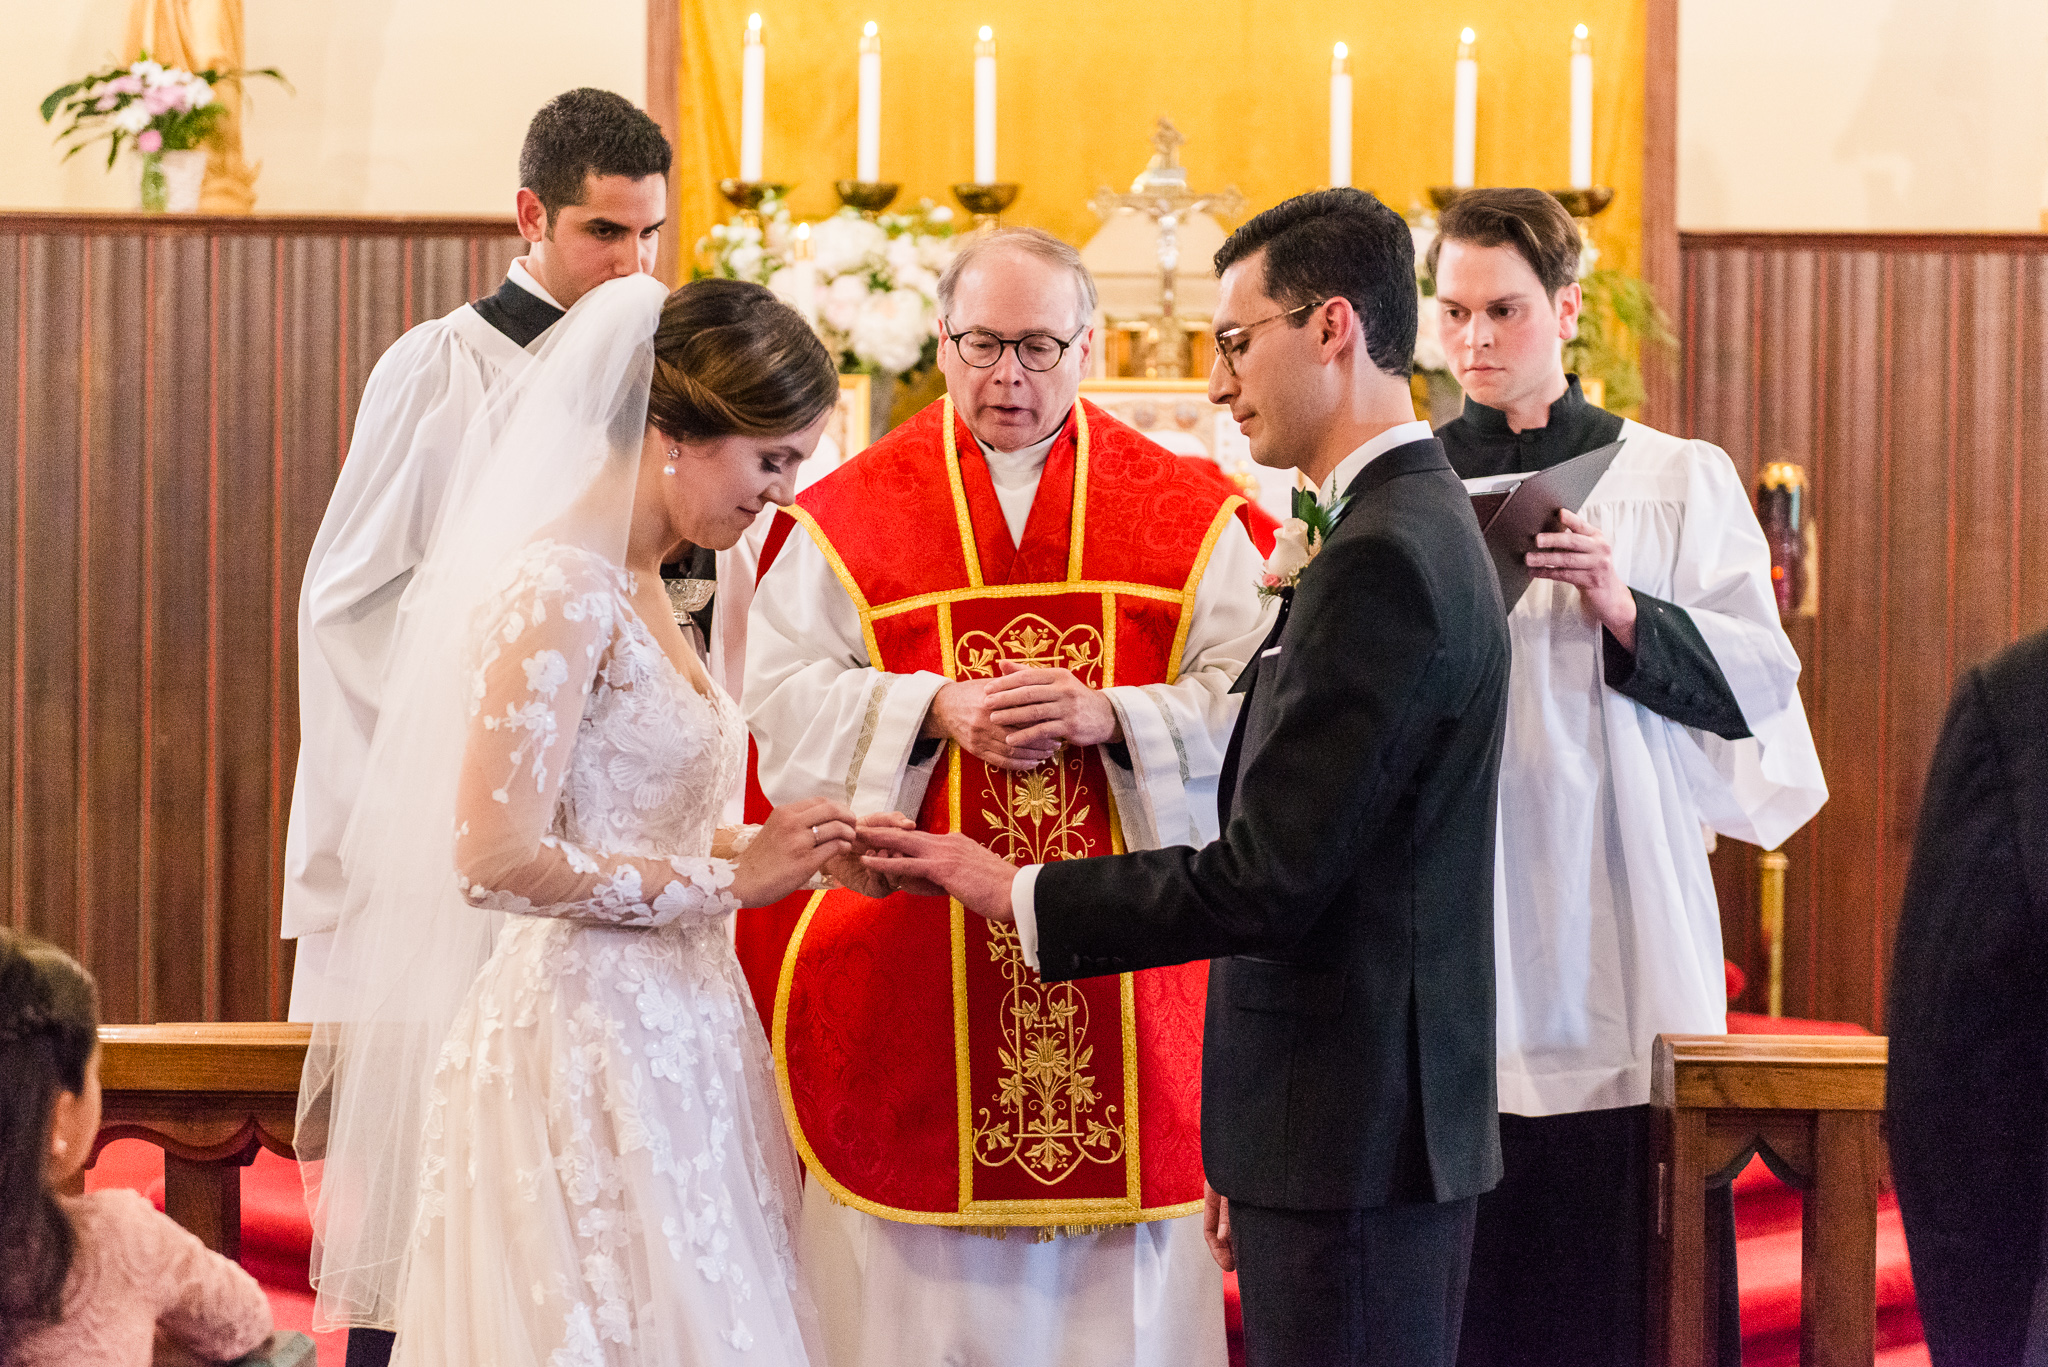 A bride and groom exchange rings as she puts his ring on his finger during a Catholic wedding ceremony at the Chapel of Immaculate Conception in Leesburg, Northern Virginia